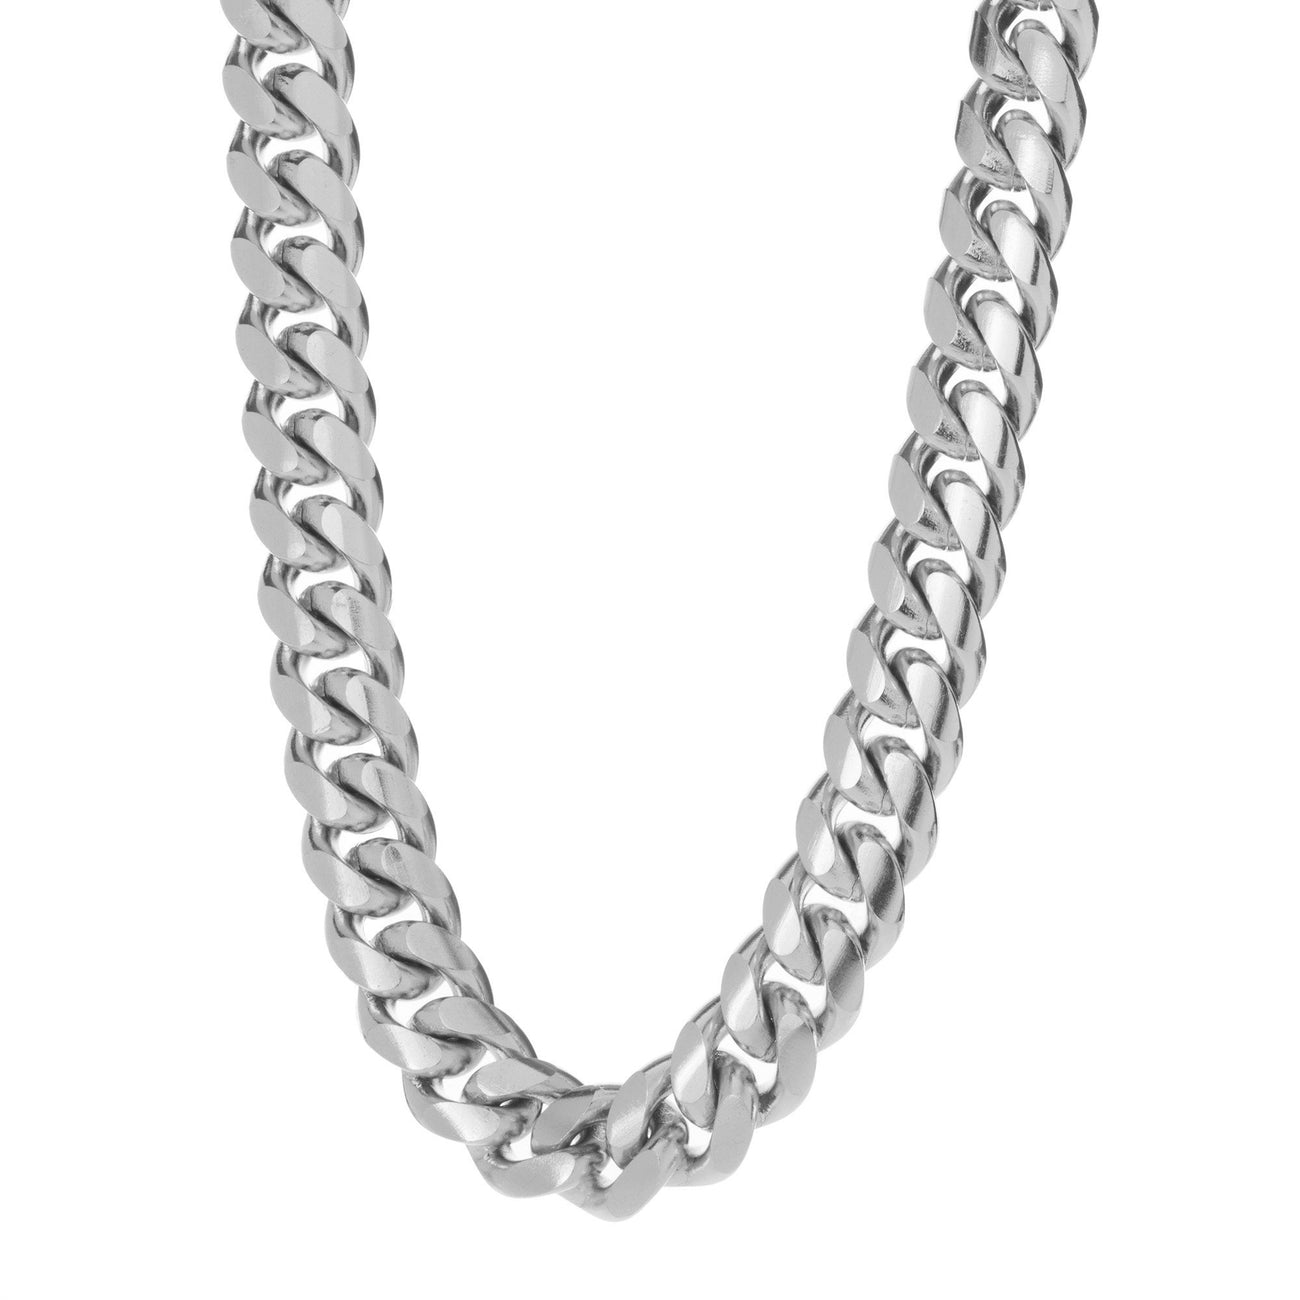 heavy stainless steel miami cuban link chain spicyice